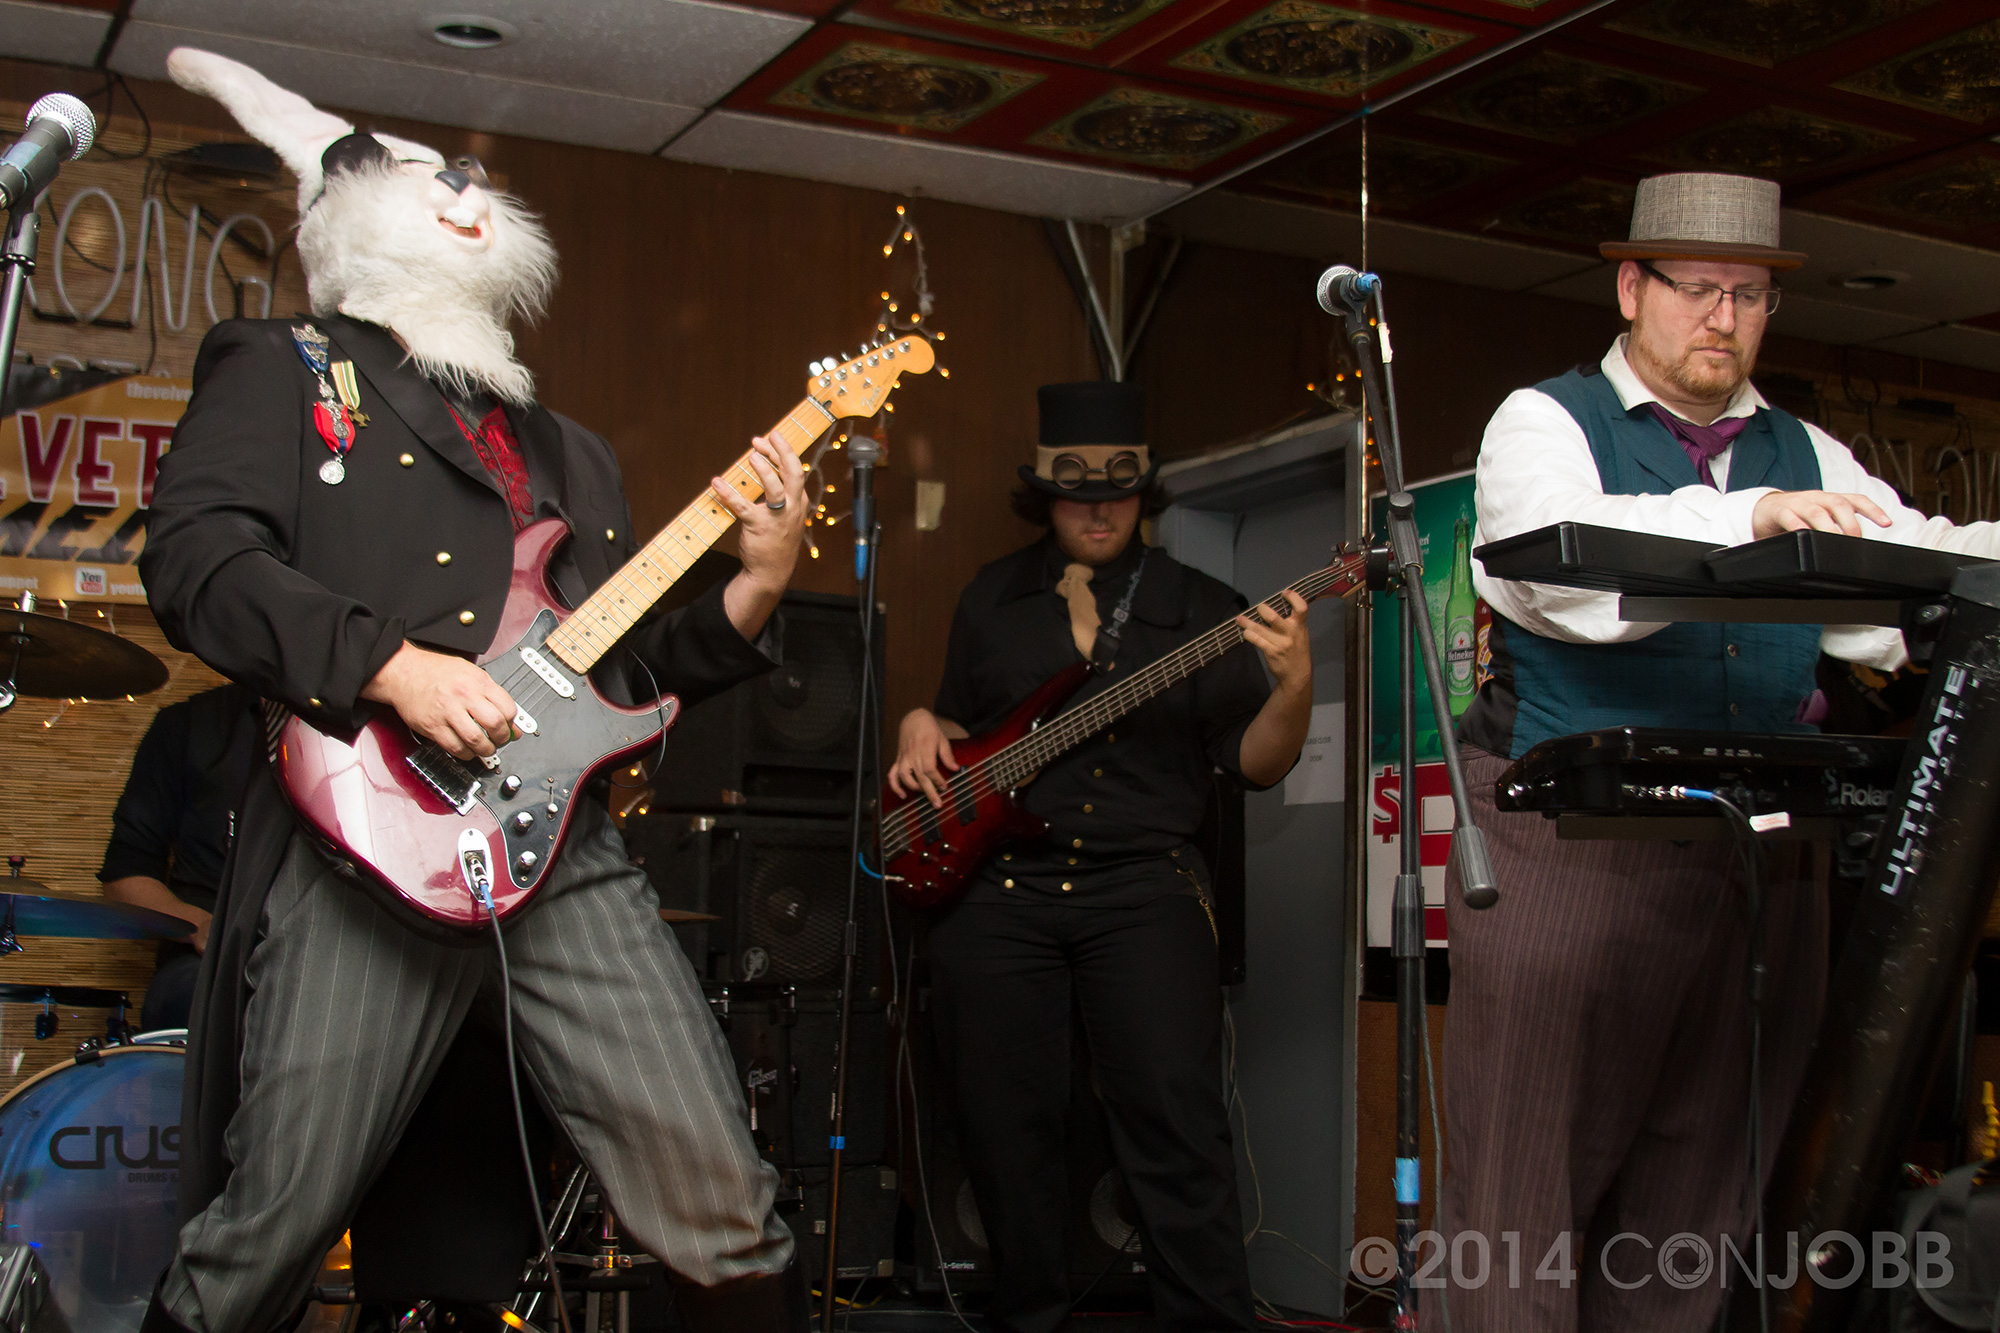 the Baron, Buster Matthews, Professor Z  - photo by Jon Cobb - Novebmer 7 2014